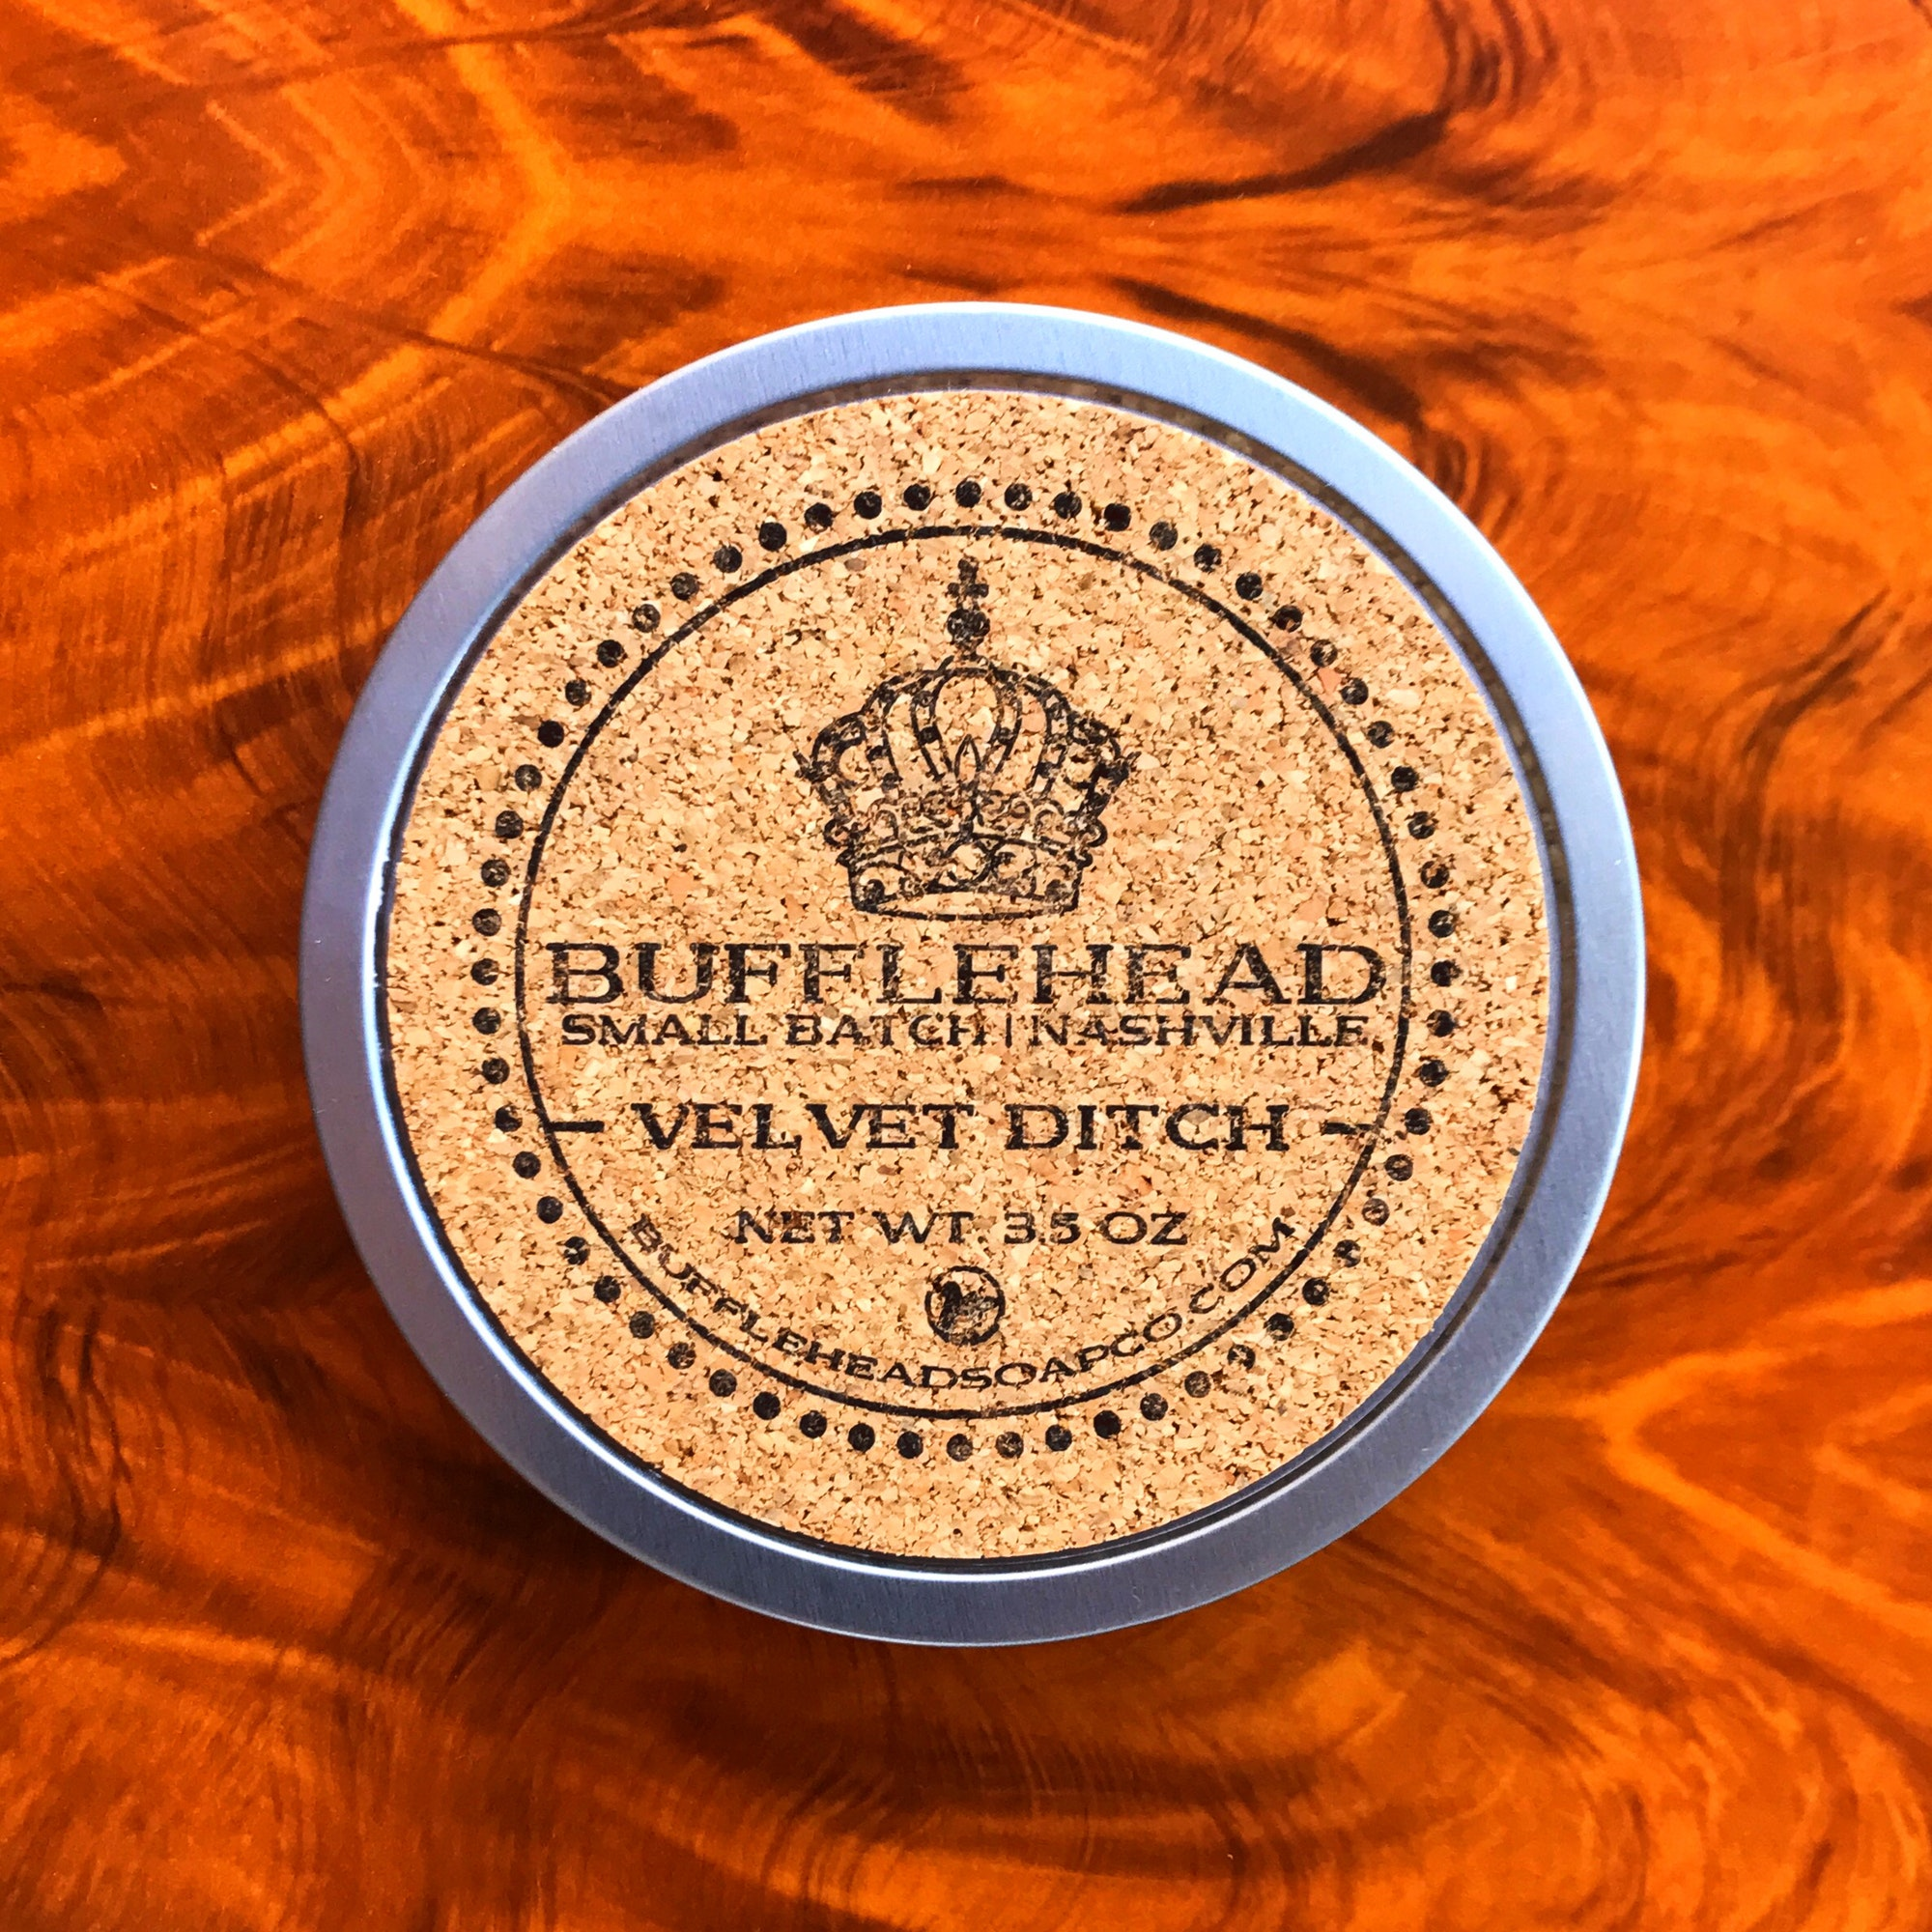 Bufflehead Soap Co. - Velvet Ditch - Soap image